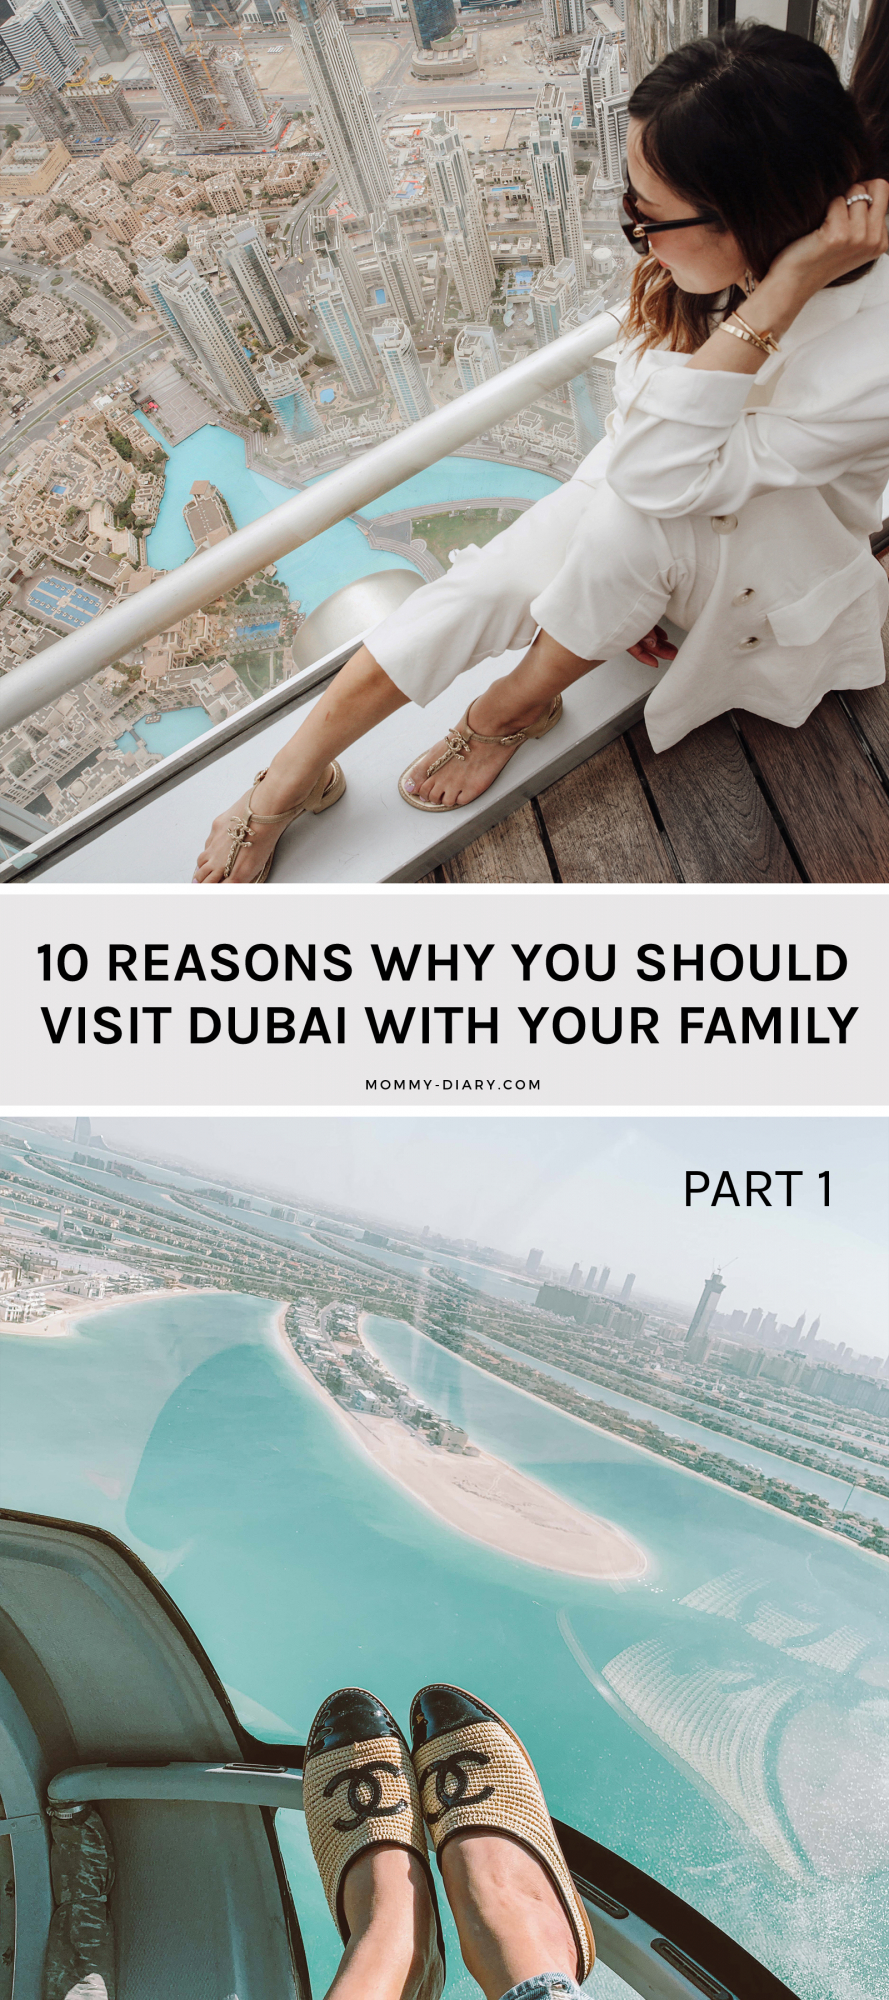 10-reasons-why-you-should-visit-dubai-with-your-family-pinterest